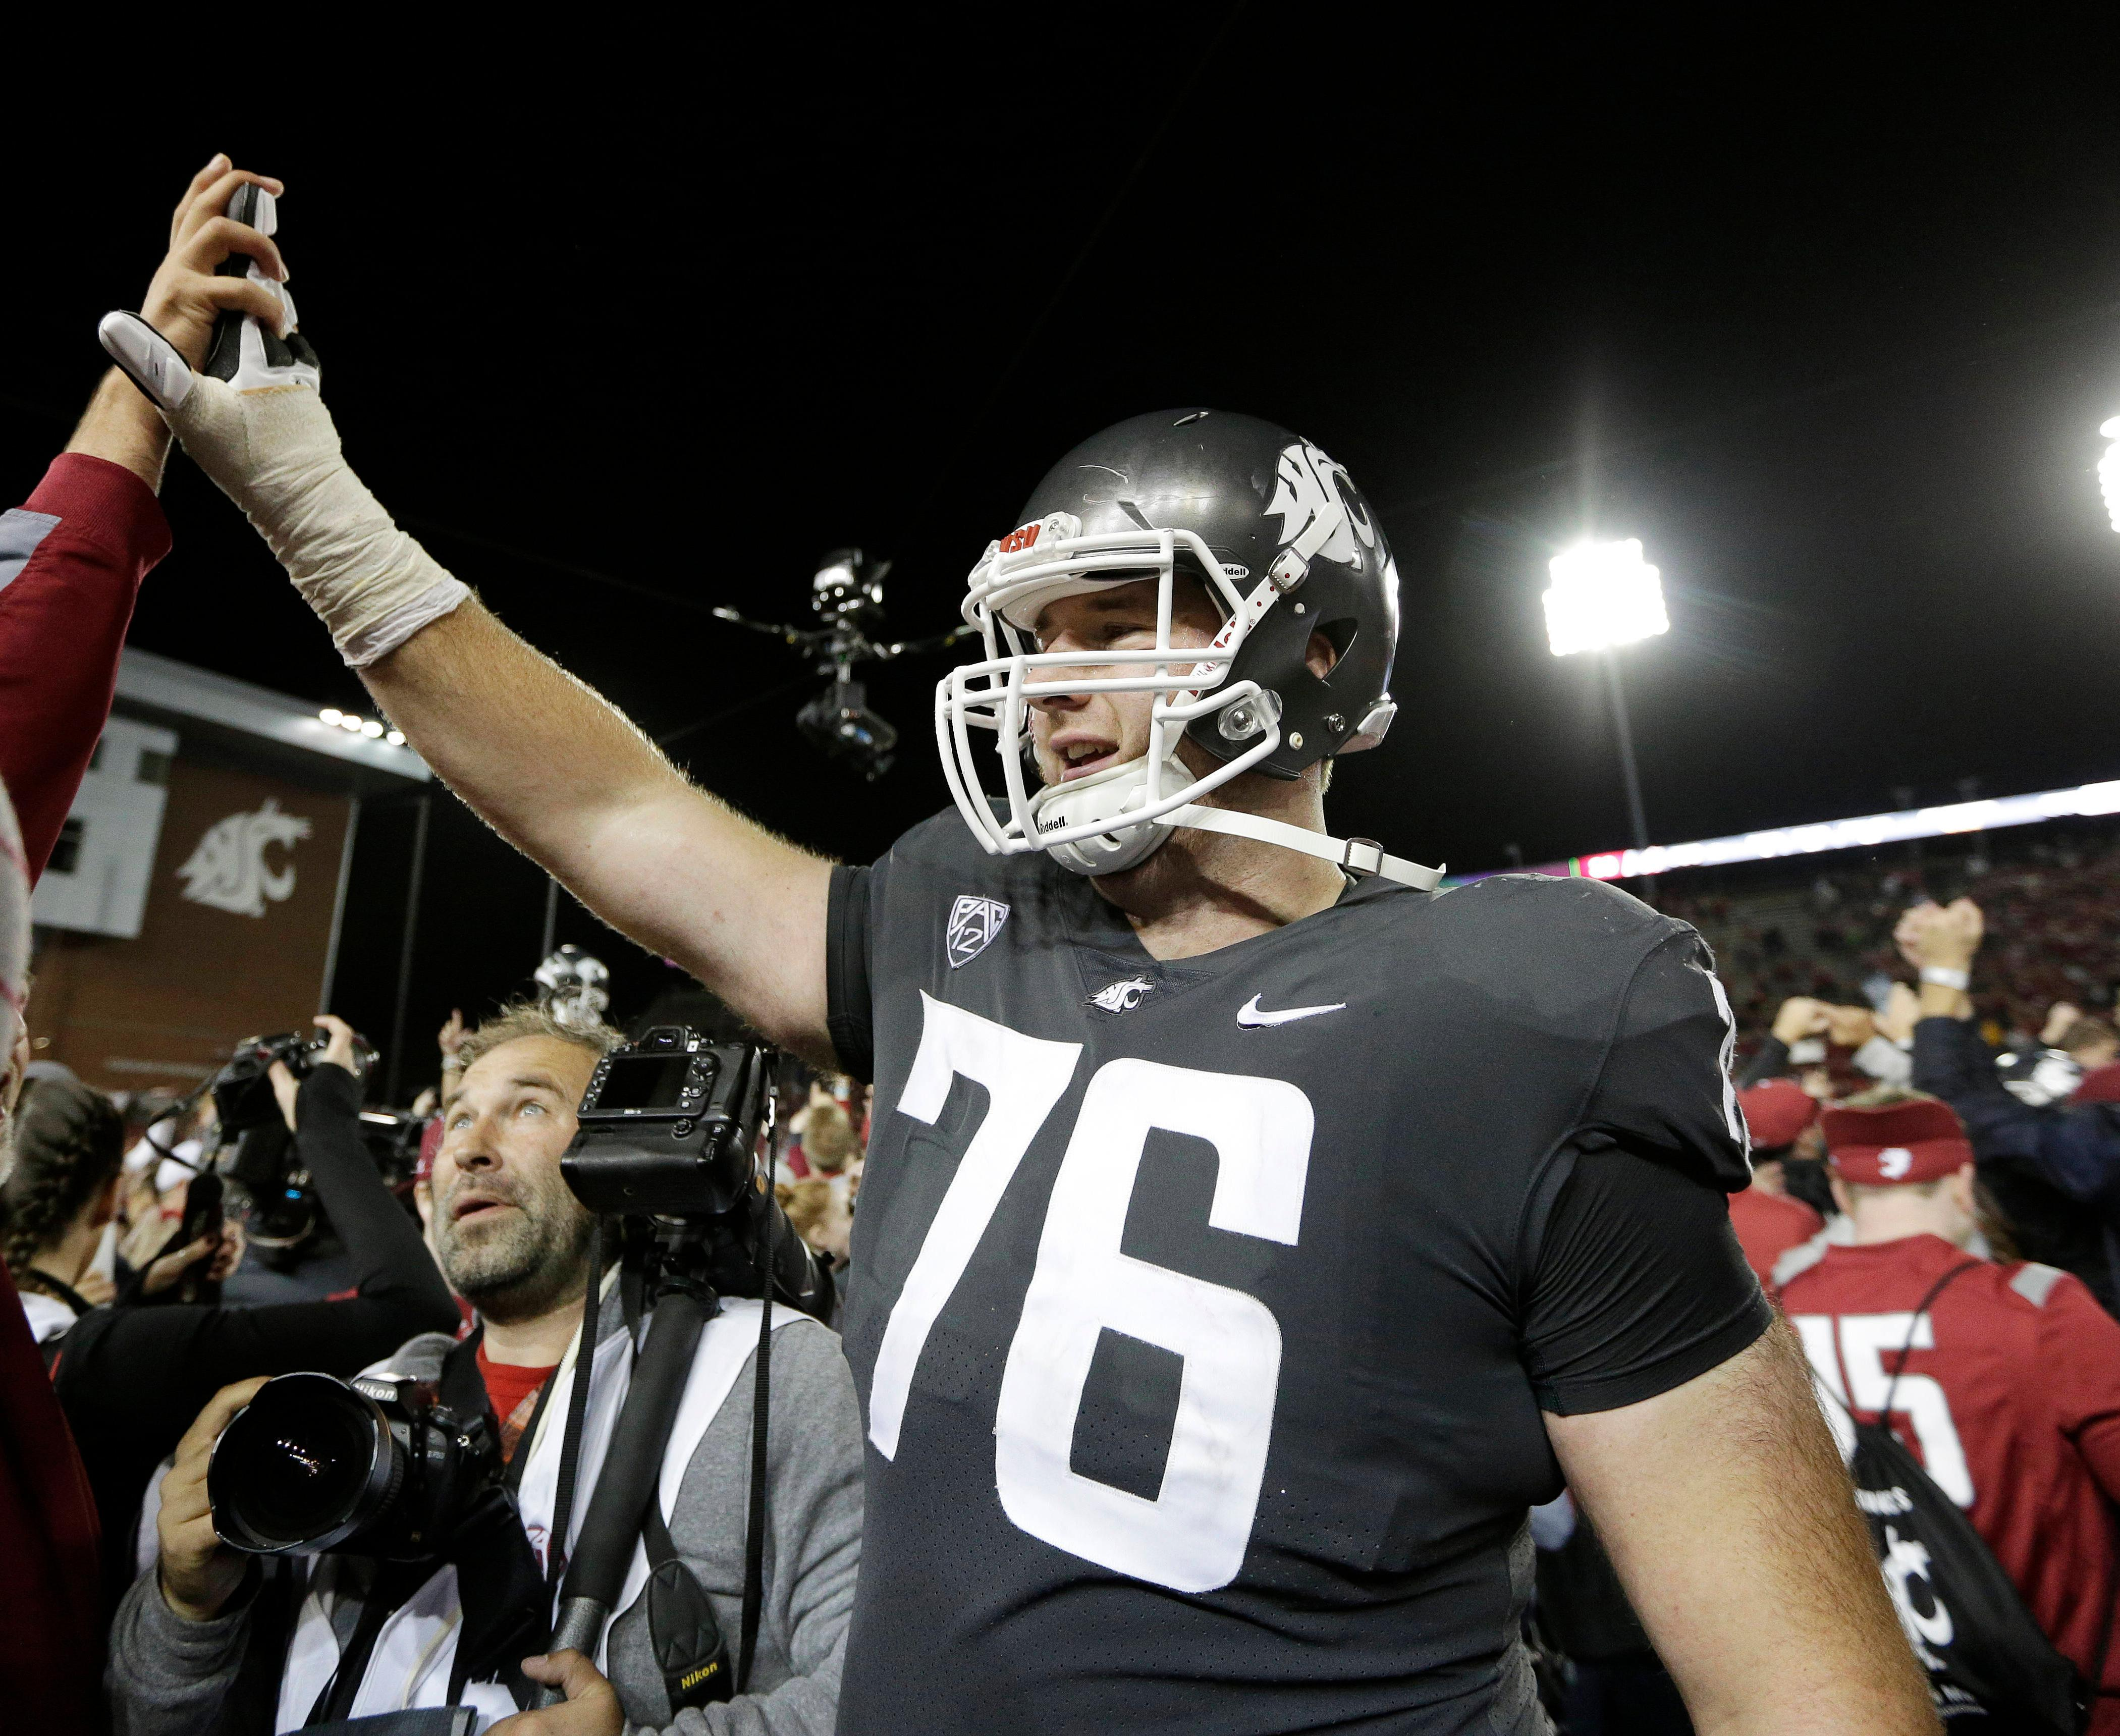 FILE - In this Sept. 29, 2017, file photo, Washington State offensive lineman Cody O'Connell (76) celebrates with fans after his team won an NCAA college football game against Southern California, in Pullman, Wash. O'Connell was selected to the AP All-Conference Pac-12 team announced Thursday, Dec. 7, 2017. (AP Photo/Young Kwak, File)